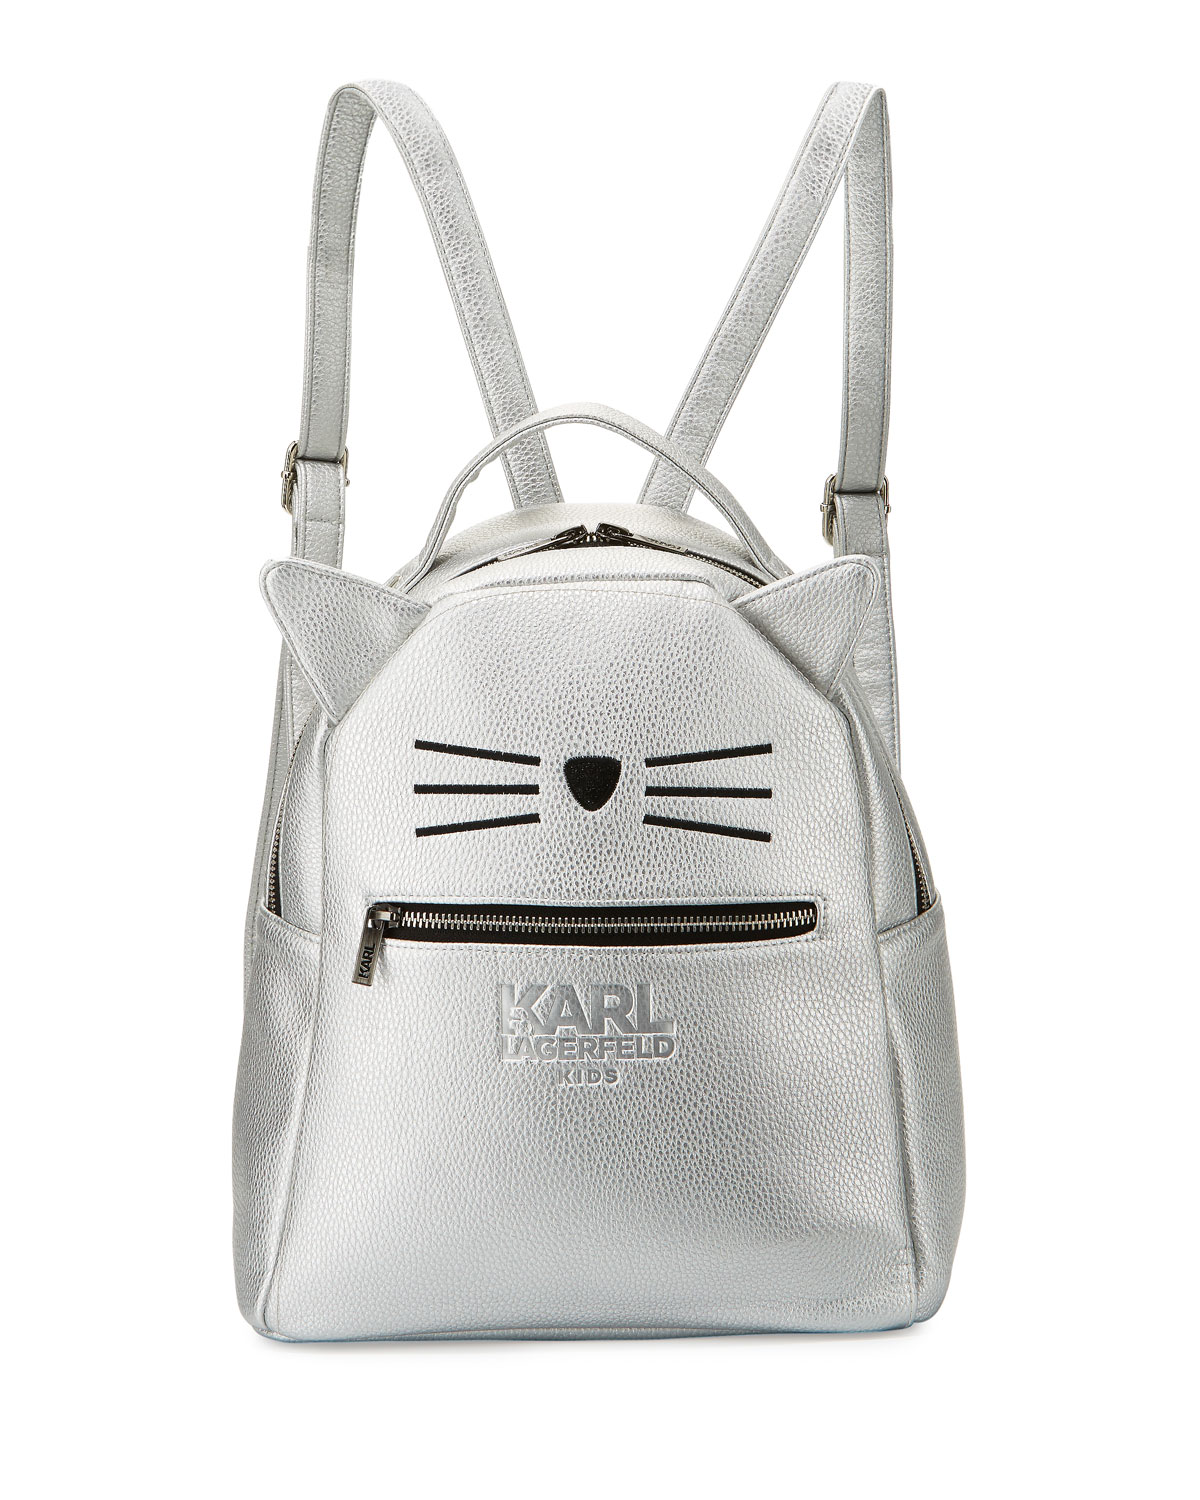 e9cfb24610f9 Karl Lagerfeld Metallic Faux-Leather Choupette Backpack